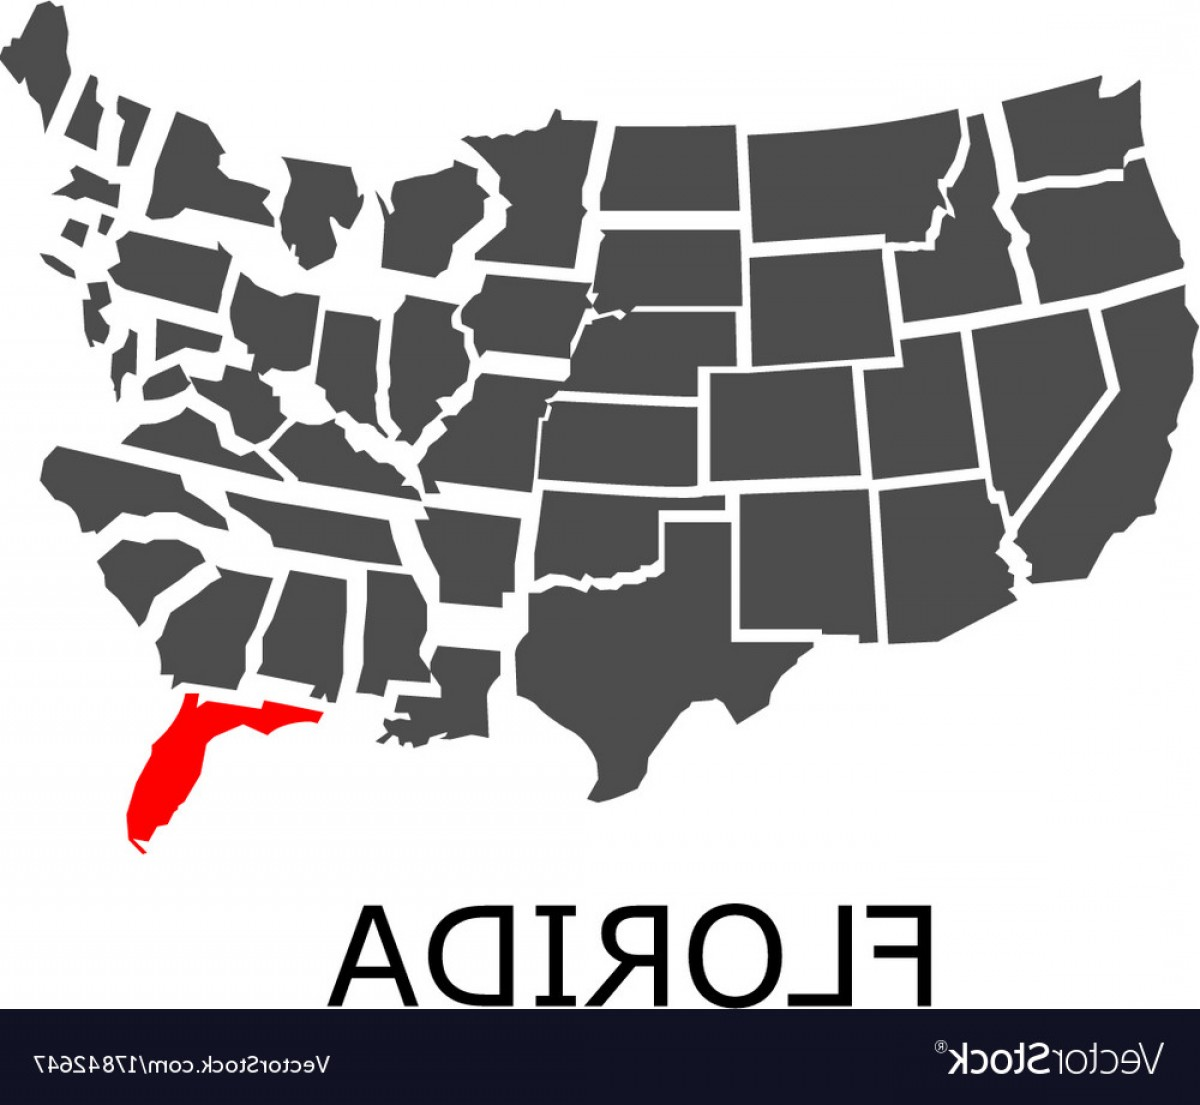 Florida License Plate Vector Art: State Of Florida On Map Of Usa Vector